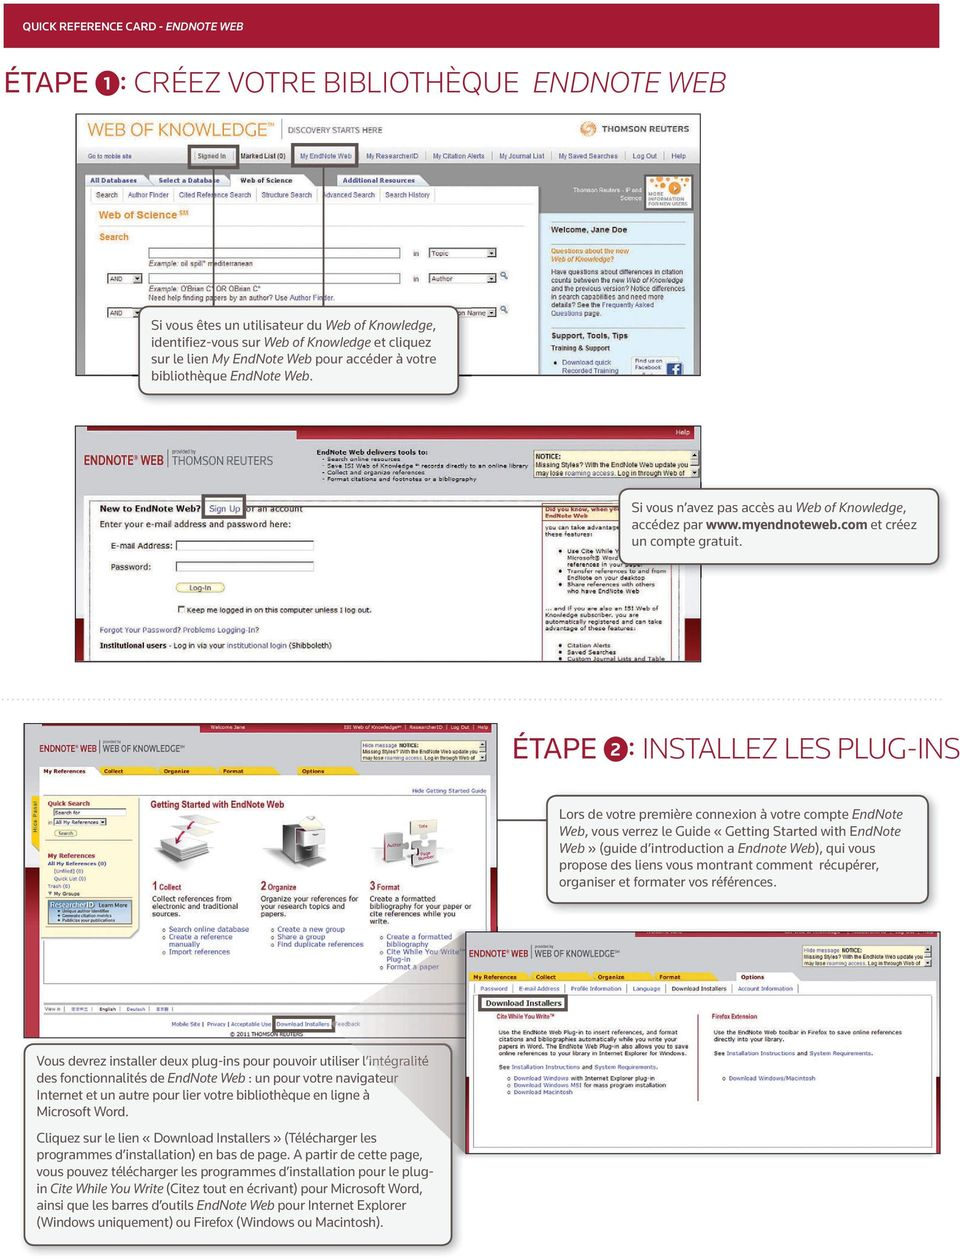 ÉTAPE 2 : INSTALLEZ LES PLUG-INS Lors de votre première connexion à votre compte EndNote Web, vous verrez le Guide «Getting Started with EndNote Web» (guide d introduction a Endnote Web), qui vous